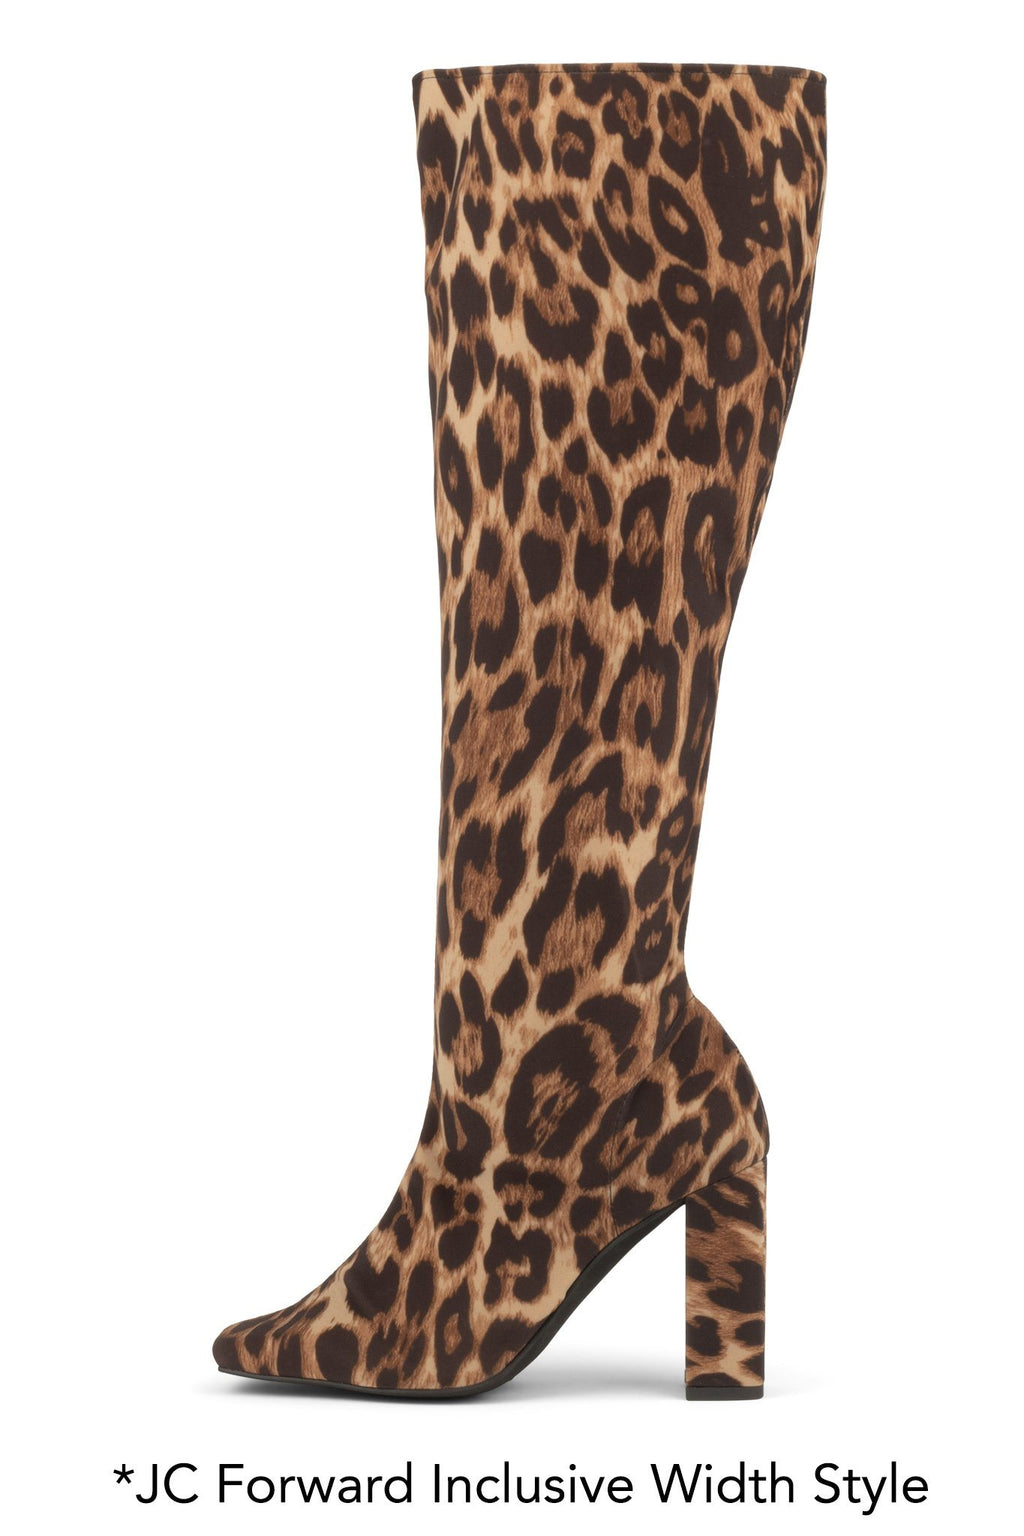 MALLGRAB-K Knee-High Boot RB